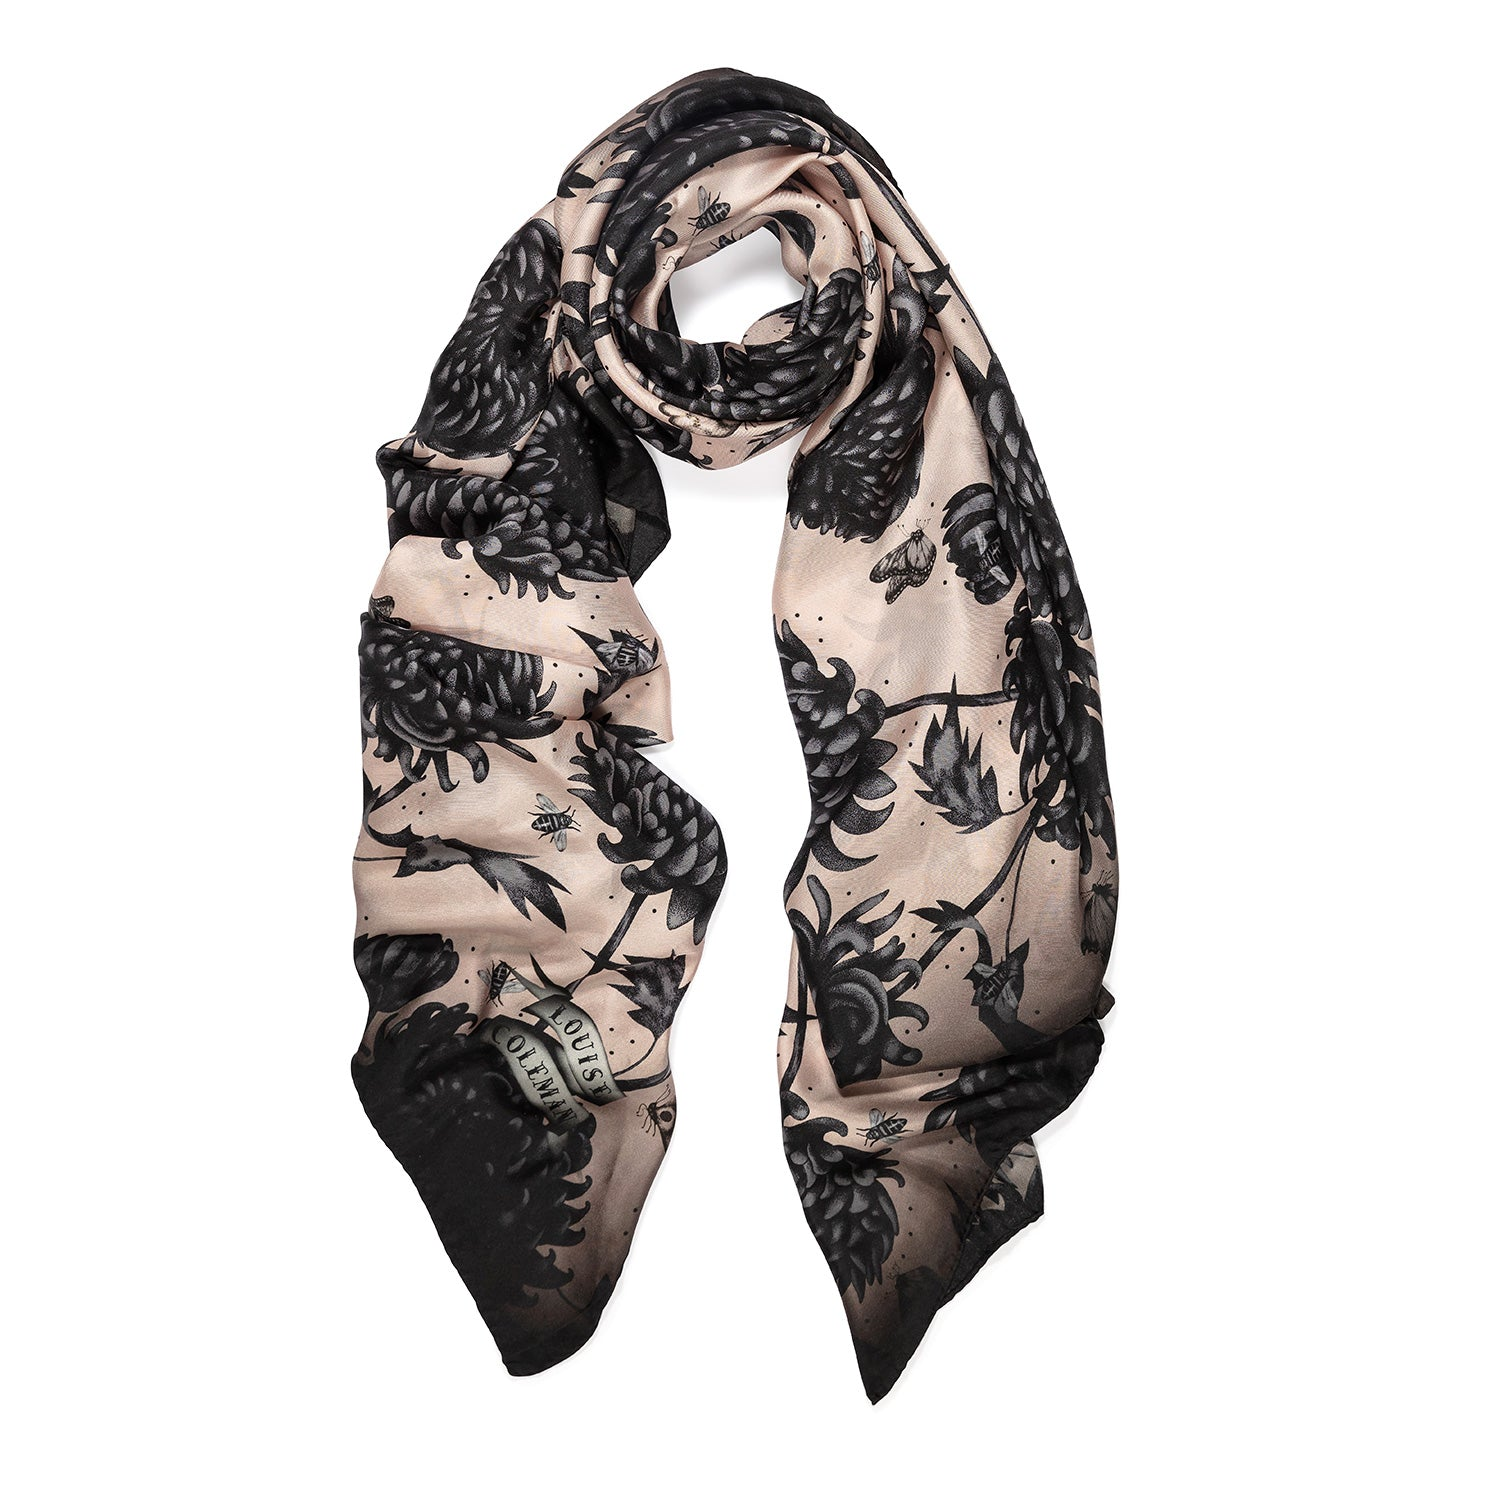 The Gure Kiku silk square scarf featuring an intricate hand illustrated floral print by Louise Coleman